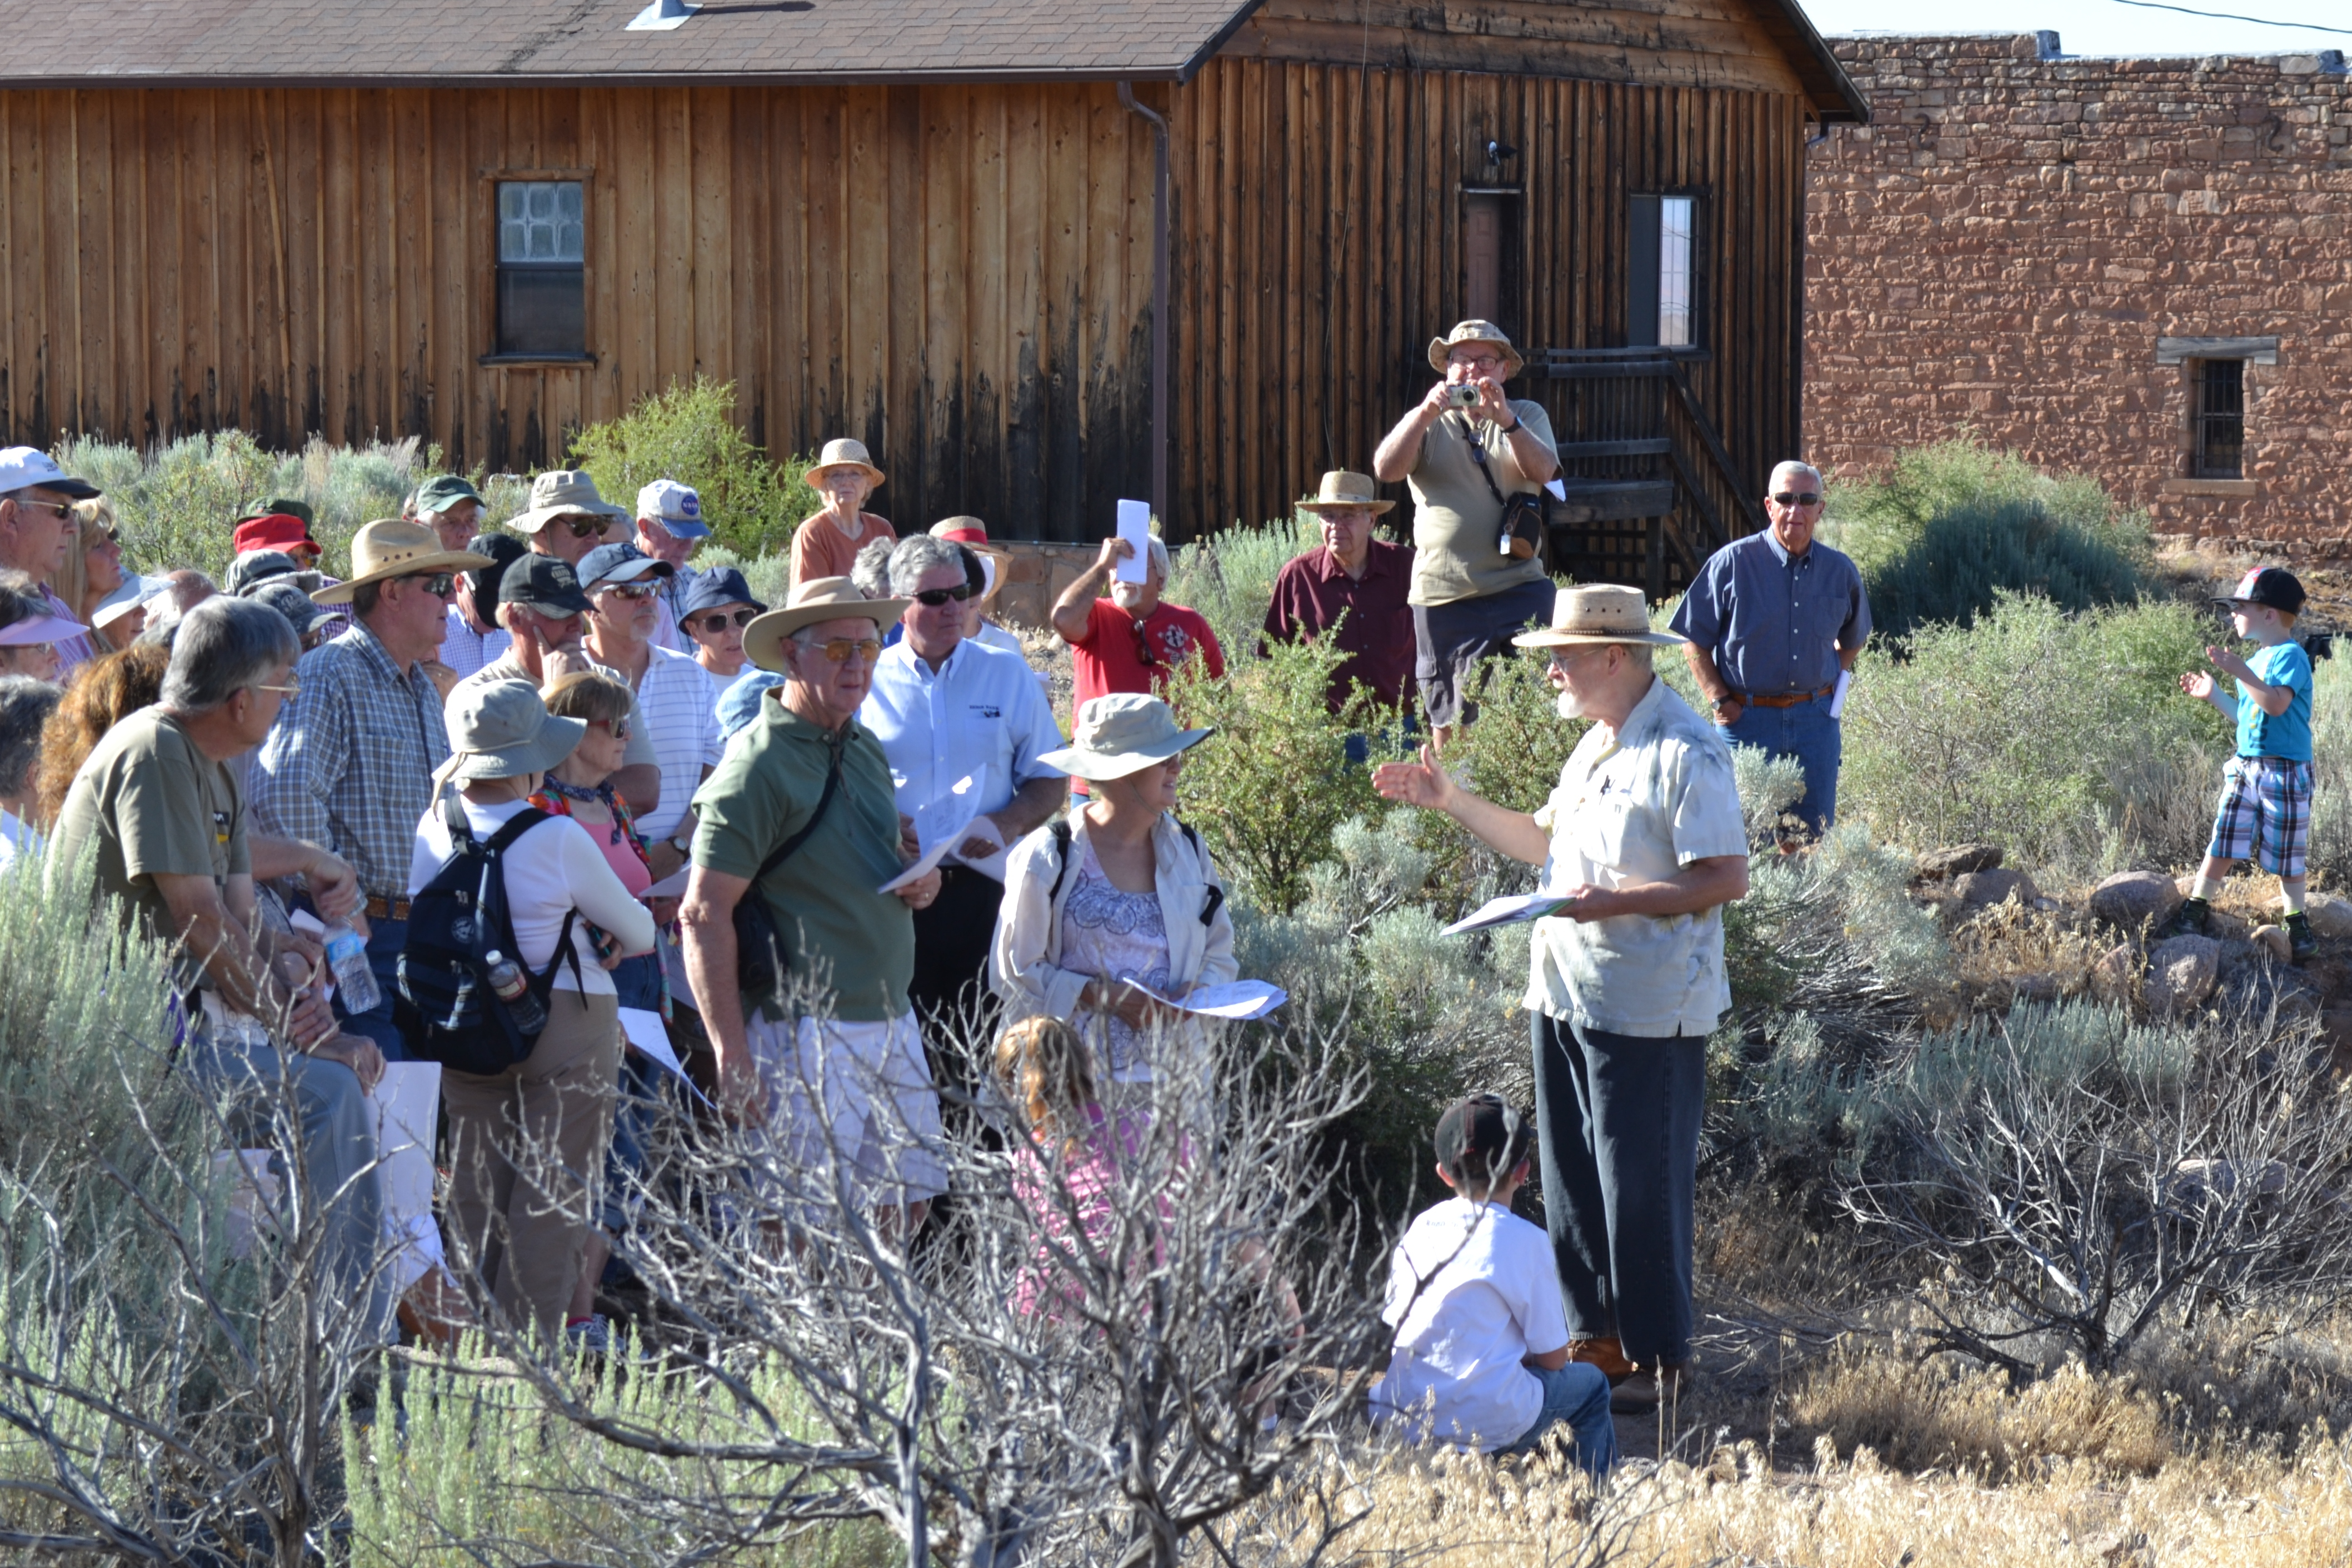 Dr. Robert Schuyler gives guided tour of Silver Reef, Leeds, Utah, undated | Photo courtesy of Silver Reef Museum, St. George News